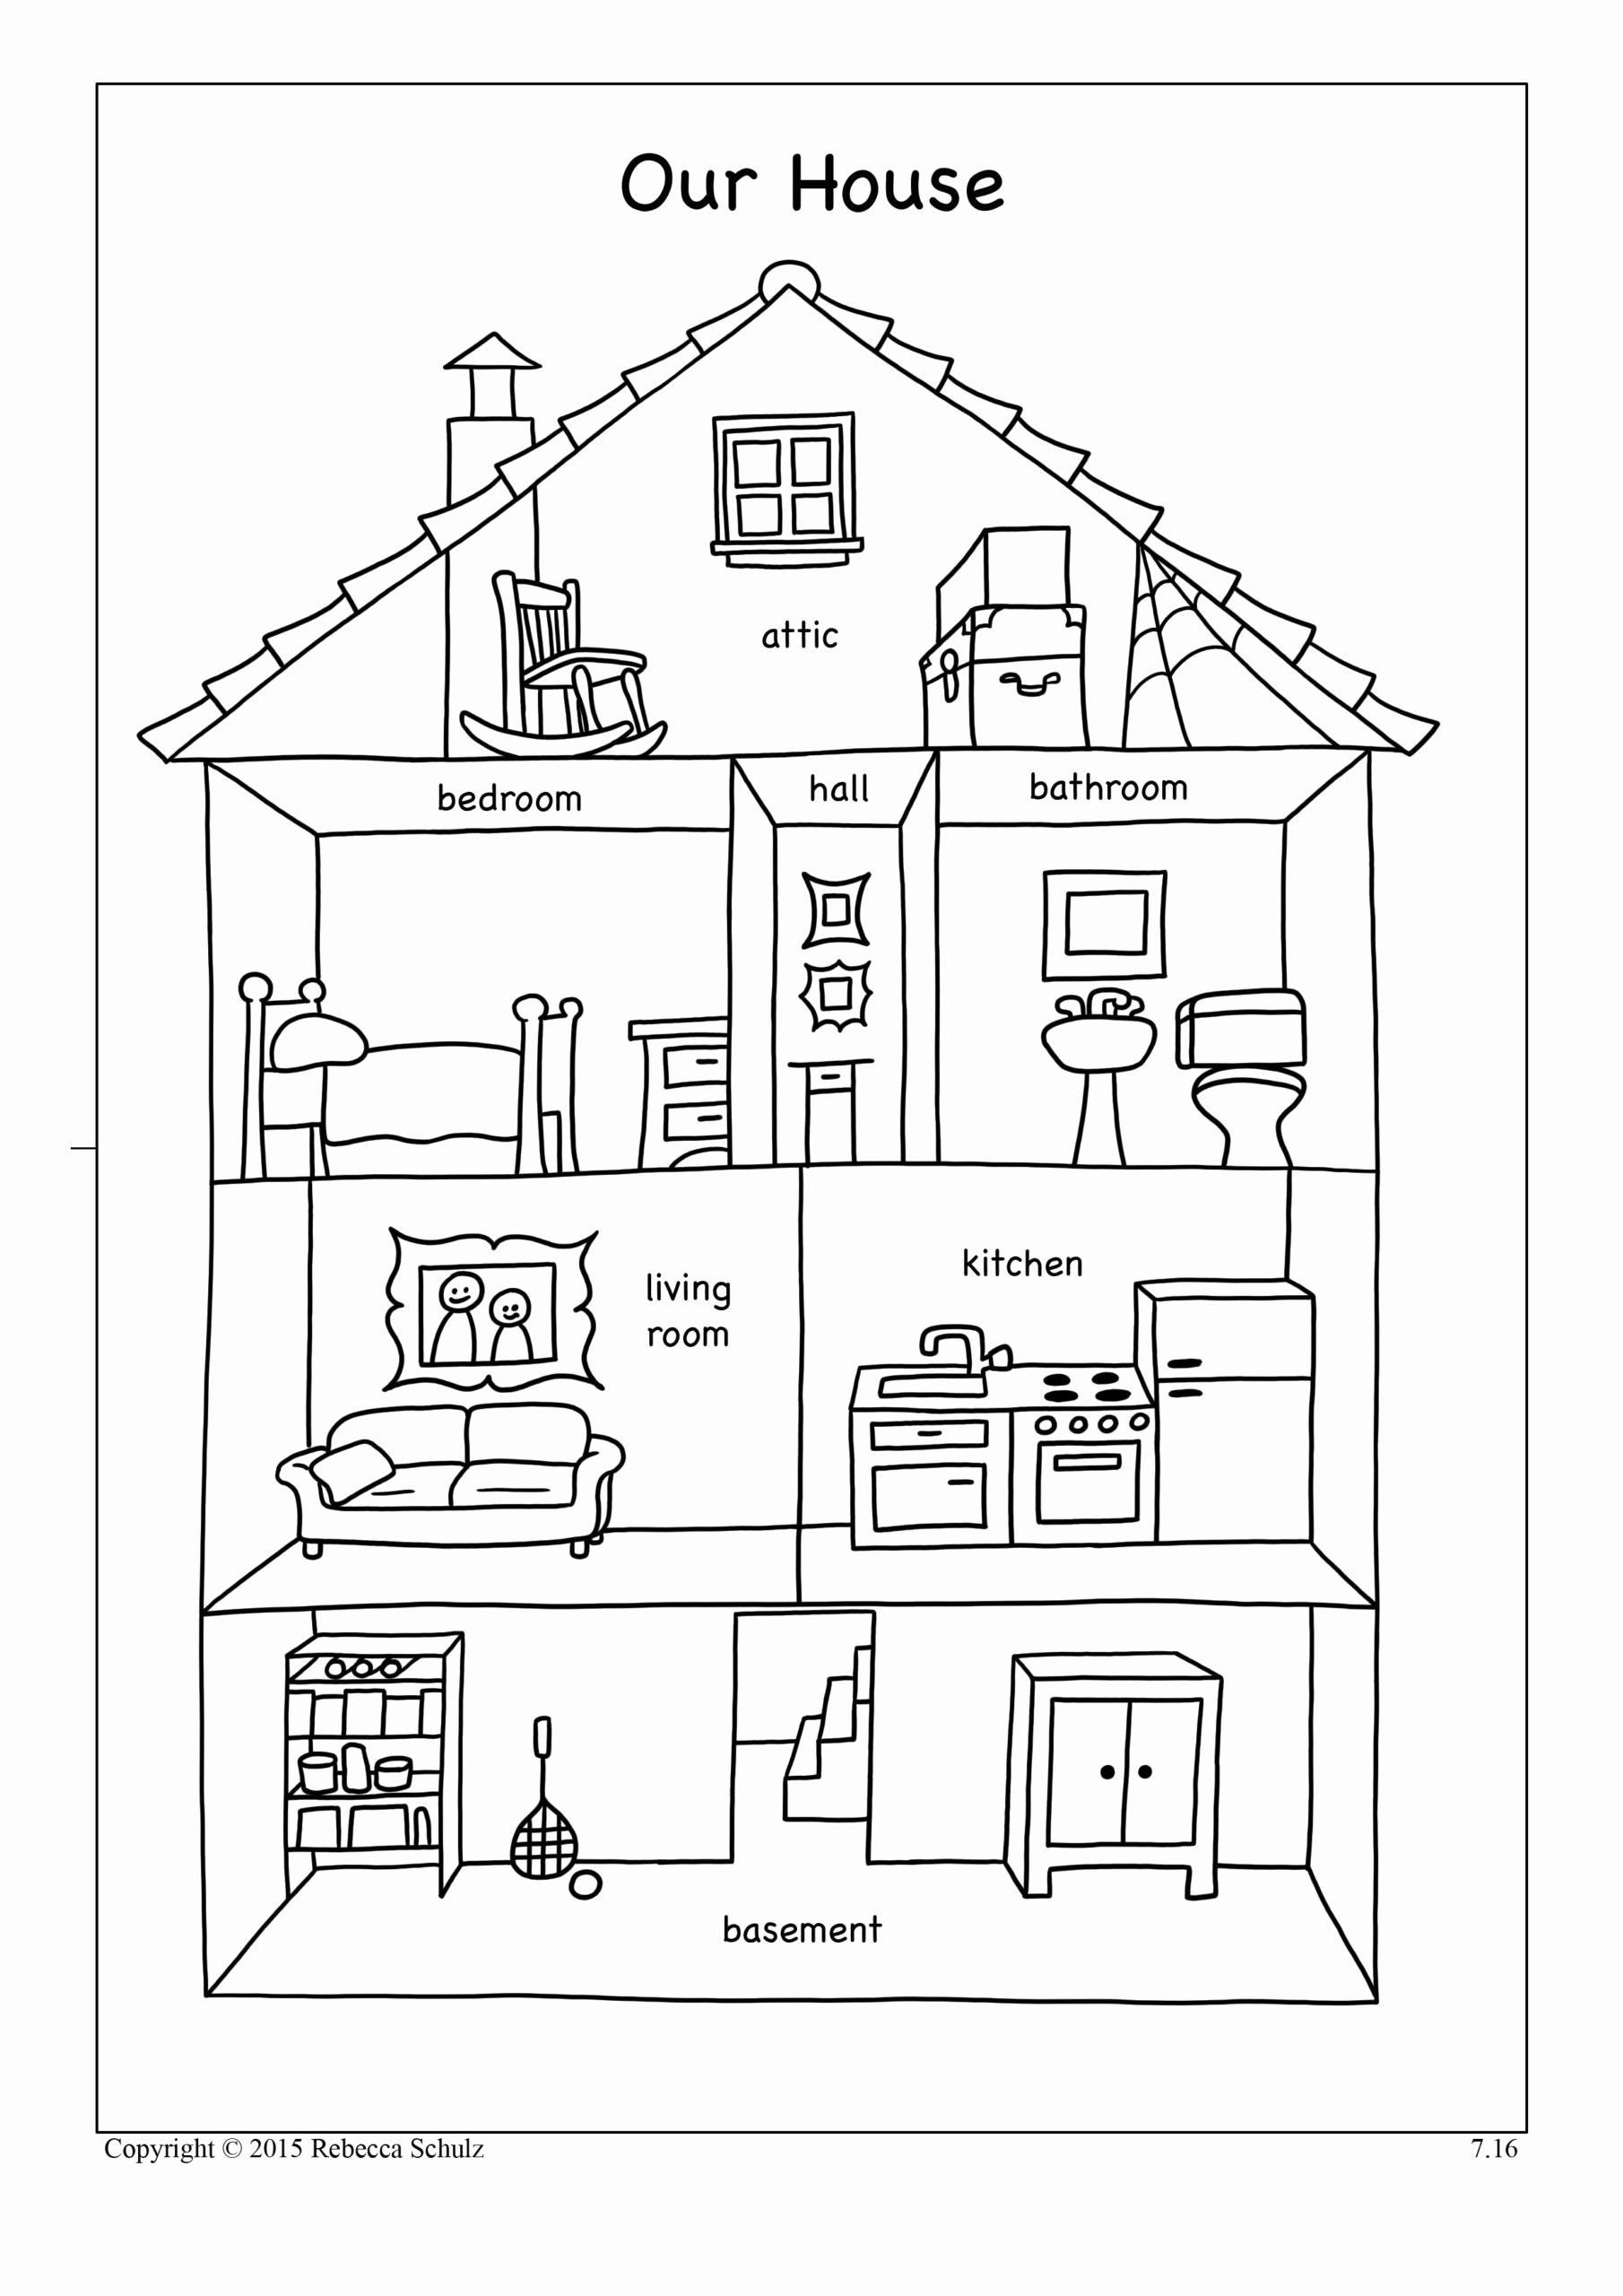 Parts Of the House Worksheets for Preschoolers Fresh Resultado Imagen Para Worksheets Parts the House Con